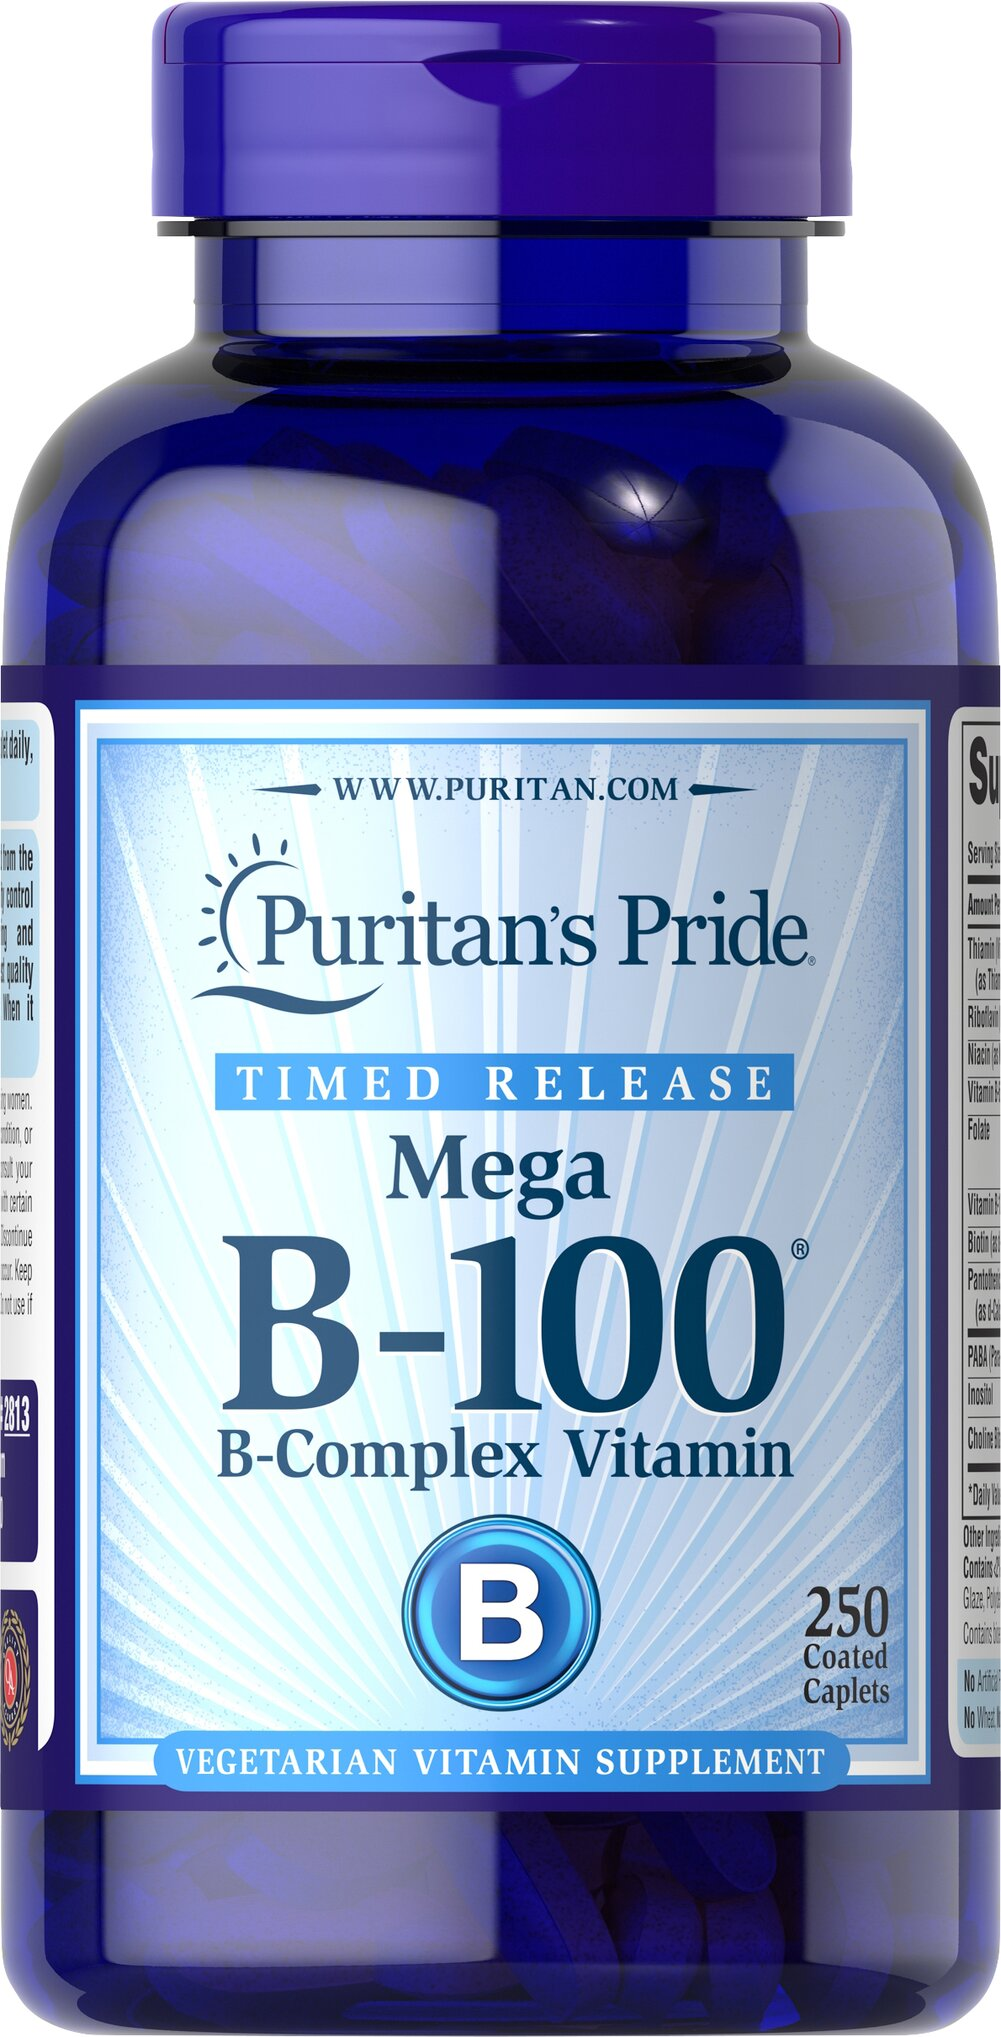 Vitamin B-100® Complex Timed Release <p>Each nutrient in the Vitamin B-100® Complex performs a unique role in maintaining proper metabolic functioning and is essential for well being.** When taken together in a complex formula, the B Vitamins help to maintain the health of the nervous system, skin, eyes and hair.** This product is specially formulated to provide a gradual release of vitamins over a prolonged period of time.</p>  250 Tablets 100 mg $73.99